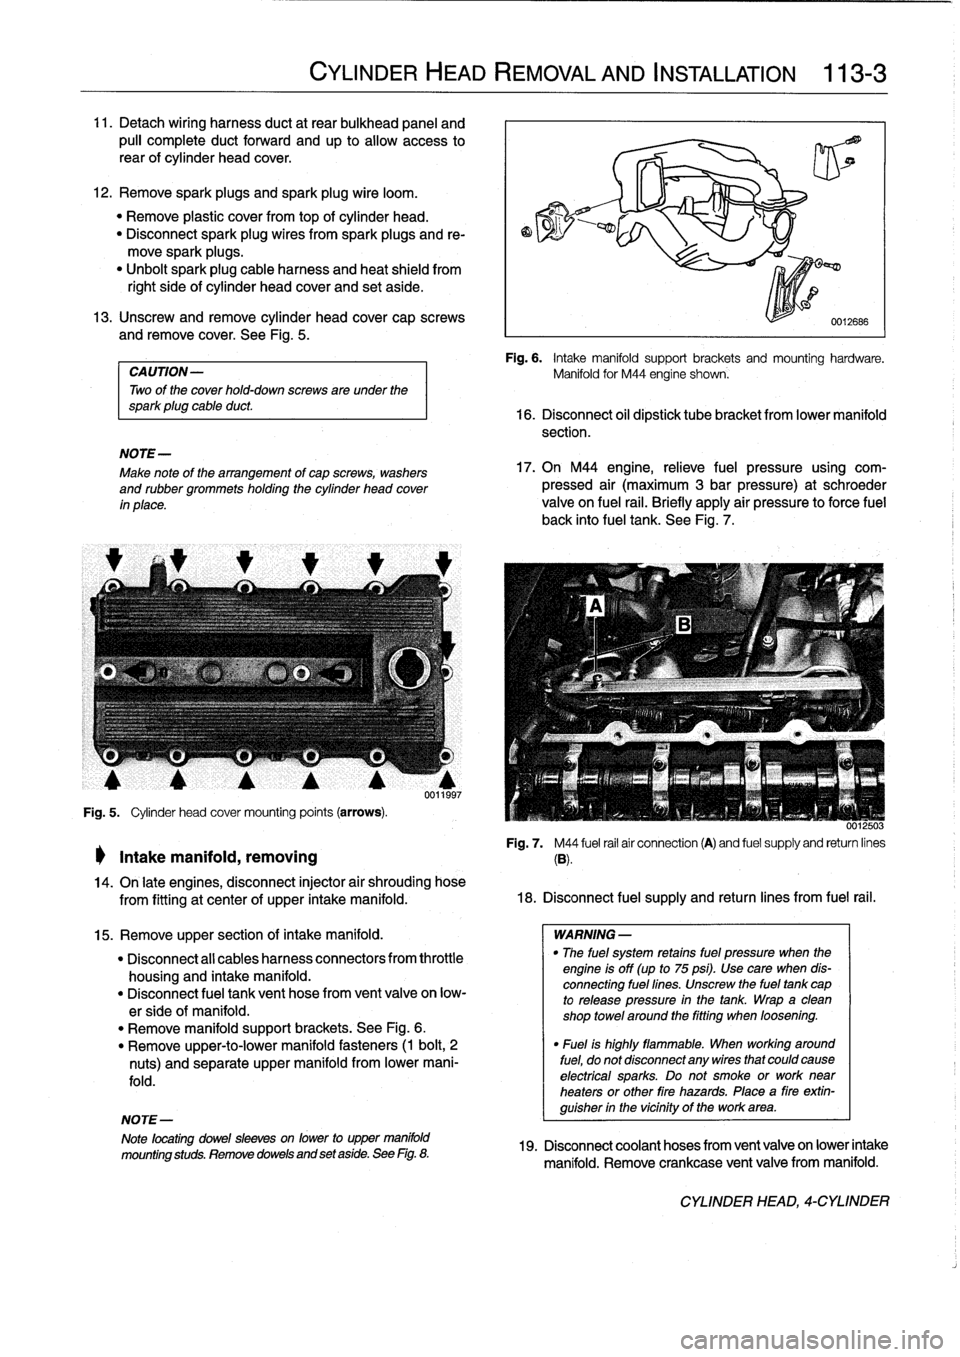 Bmw 328i 1992 E36 Workshop Manual Wire Harness 1997 Page 69 11 Detach Wiring